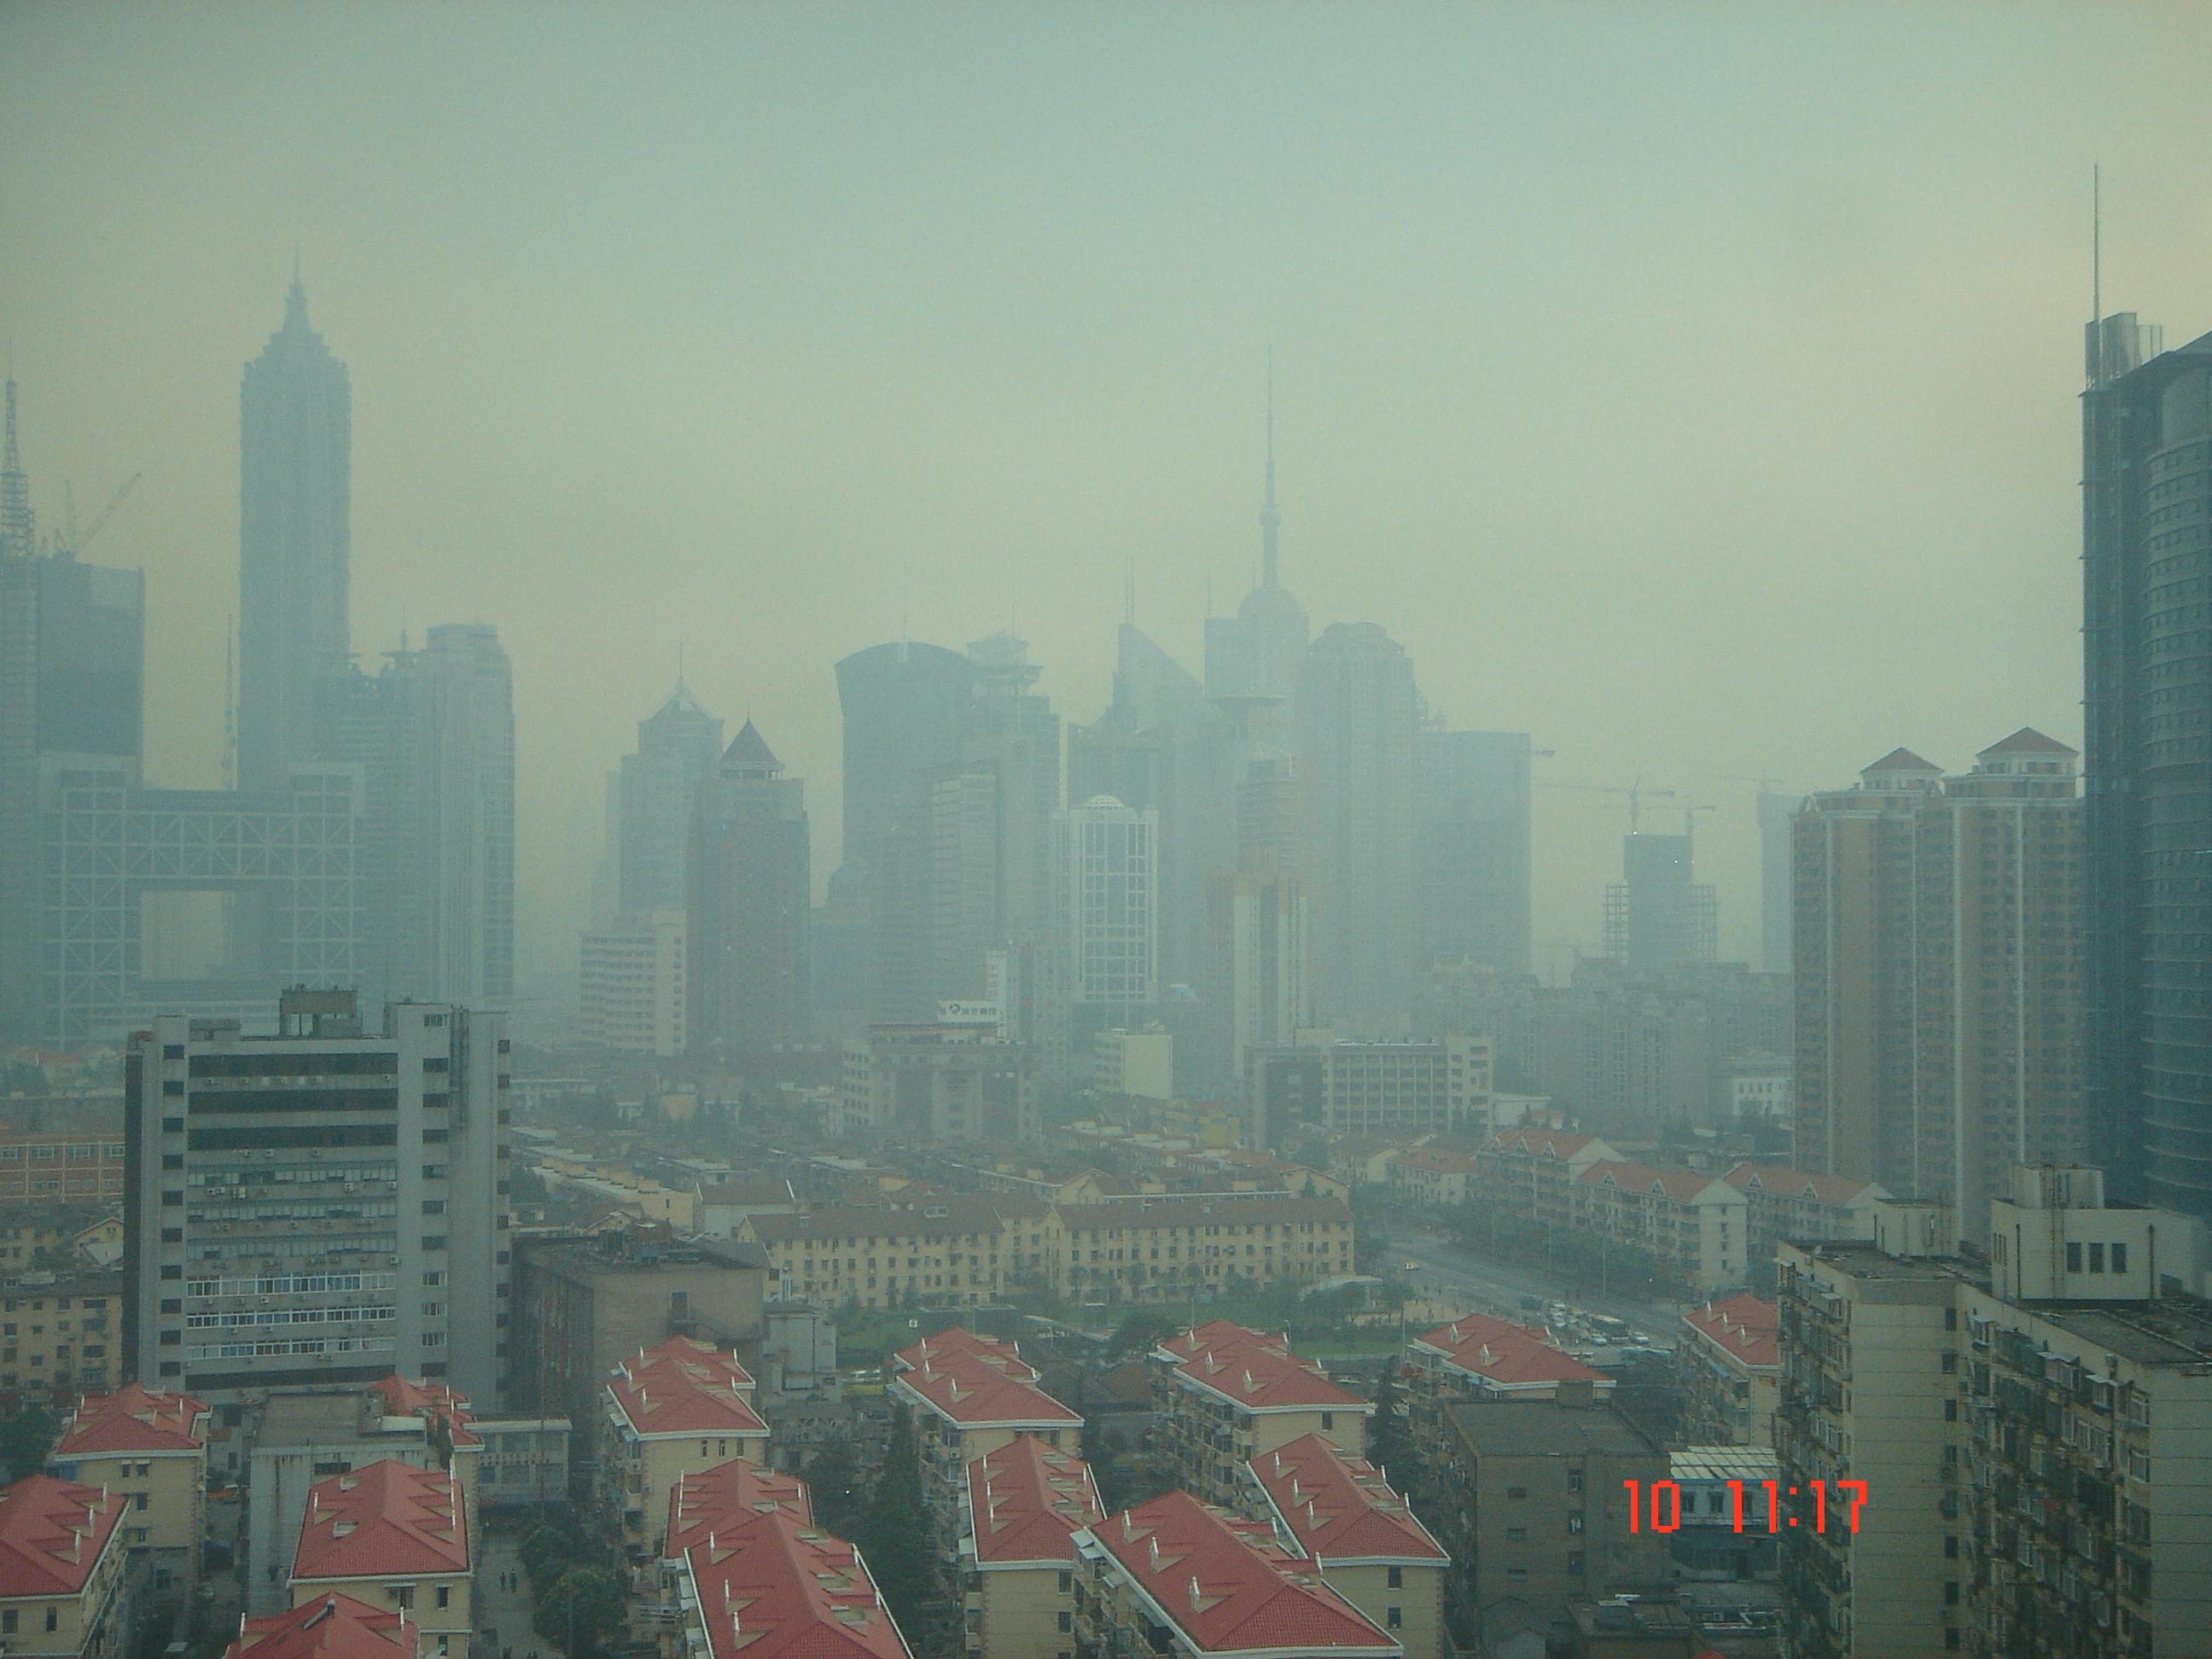 https://upload.wikimedia.org/wikipedia/commons/f/f6/Shanghai_Smog.JPG